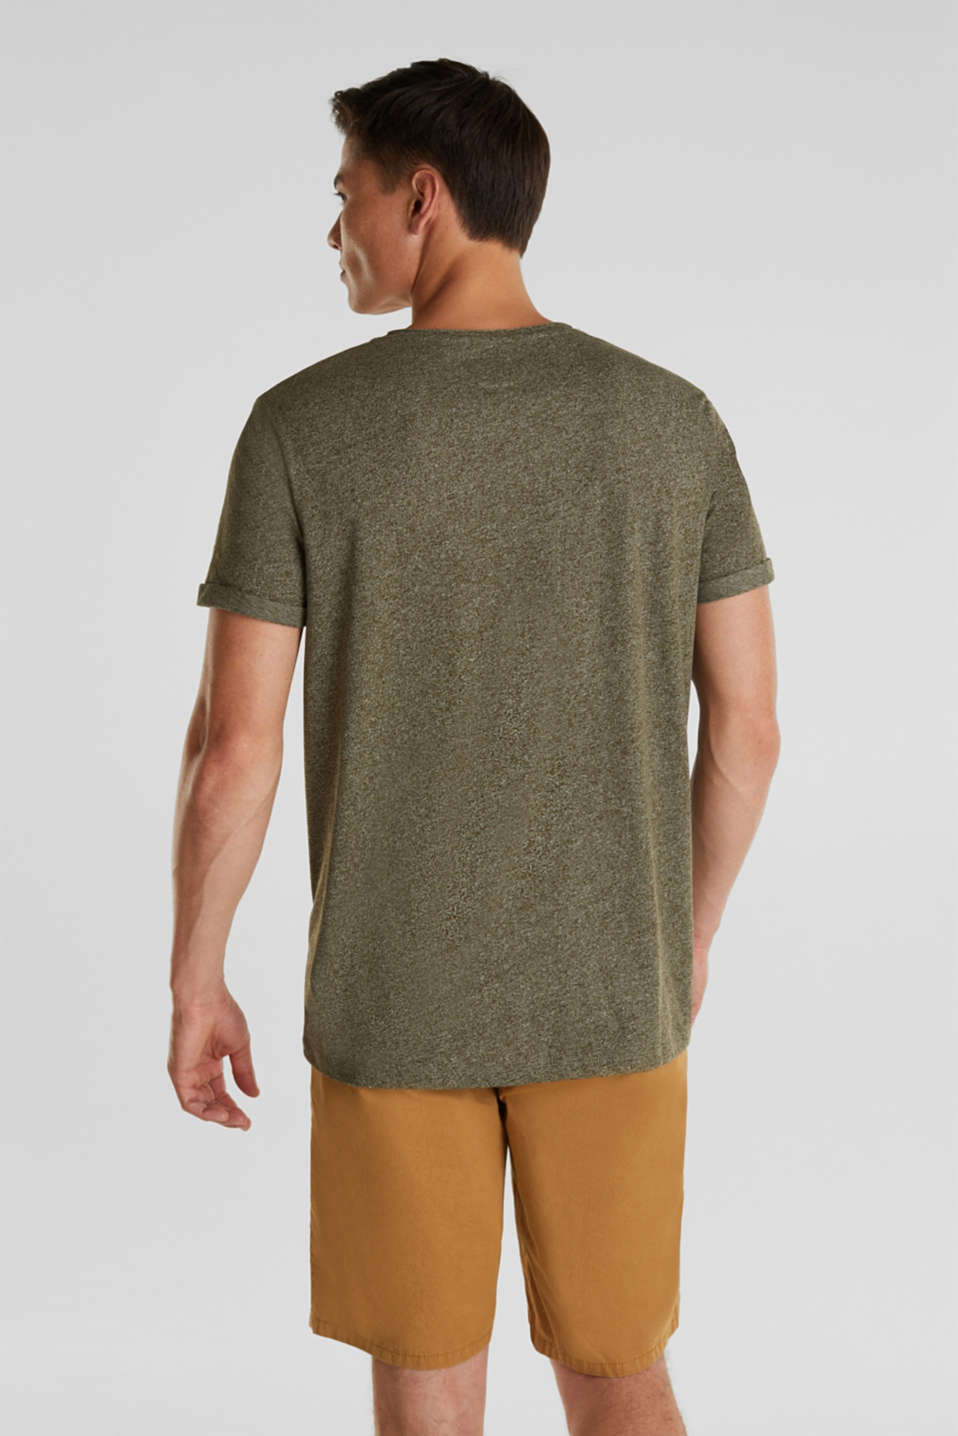 Jersey T-shirt in a casual look, OLIVE 5, detail image number 3